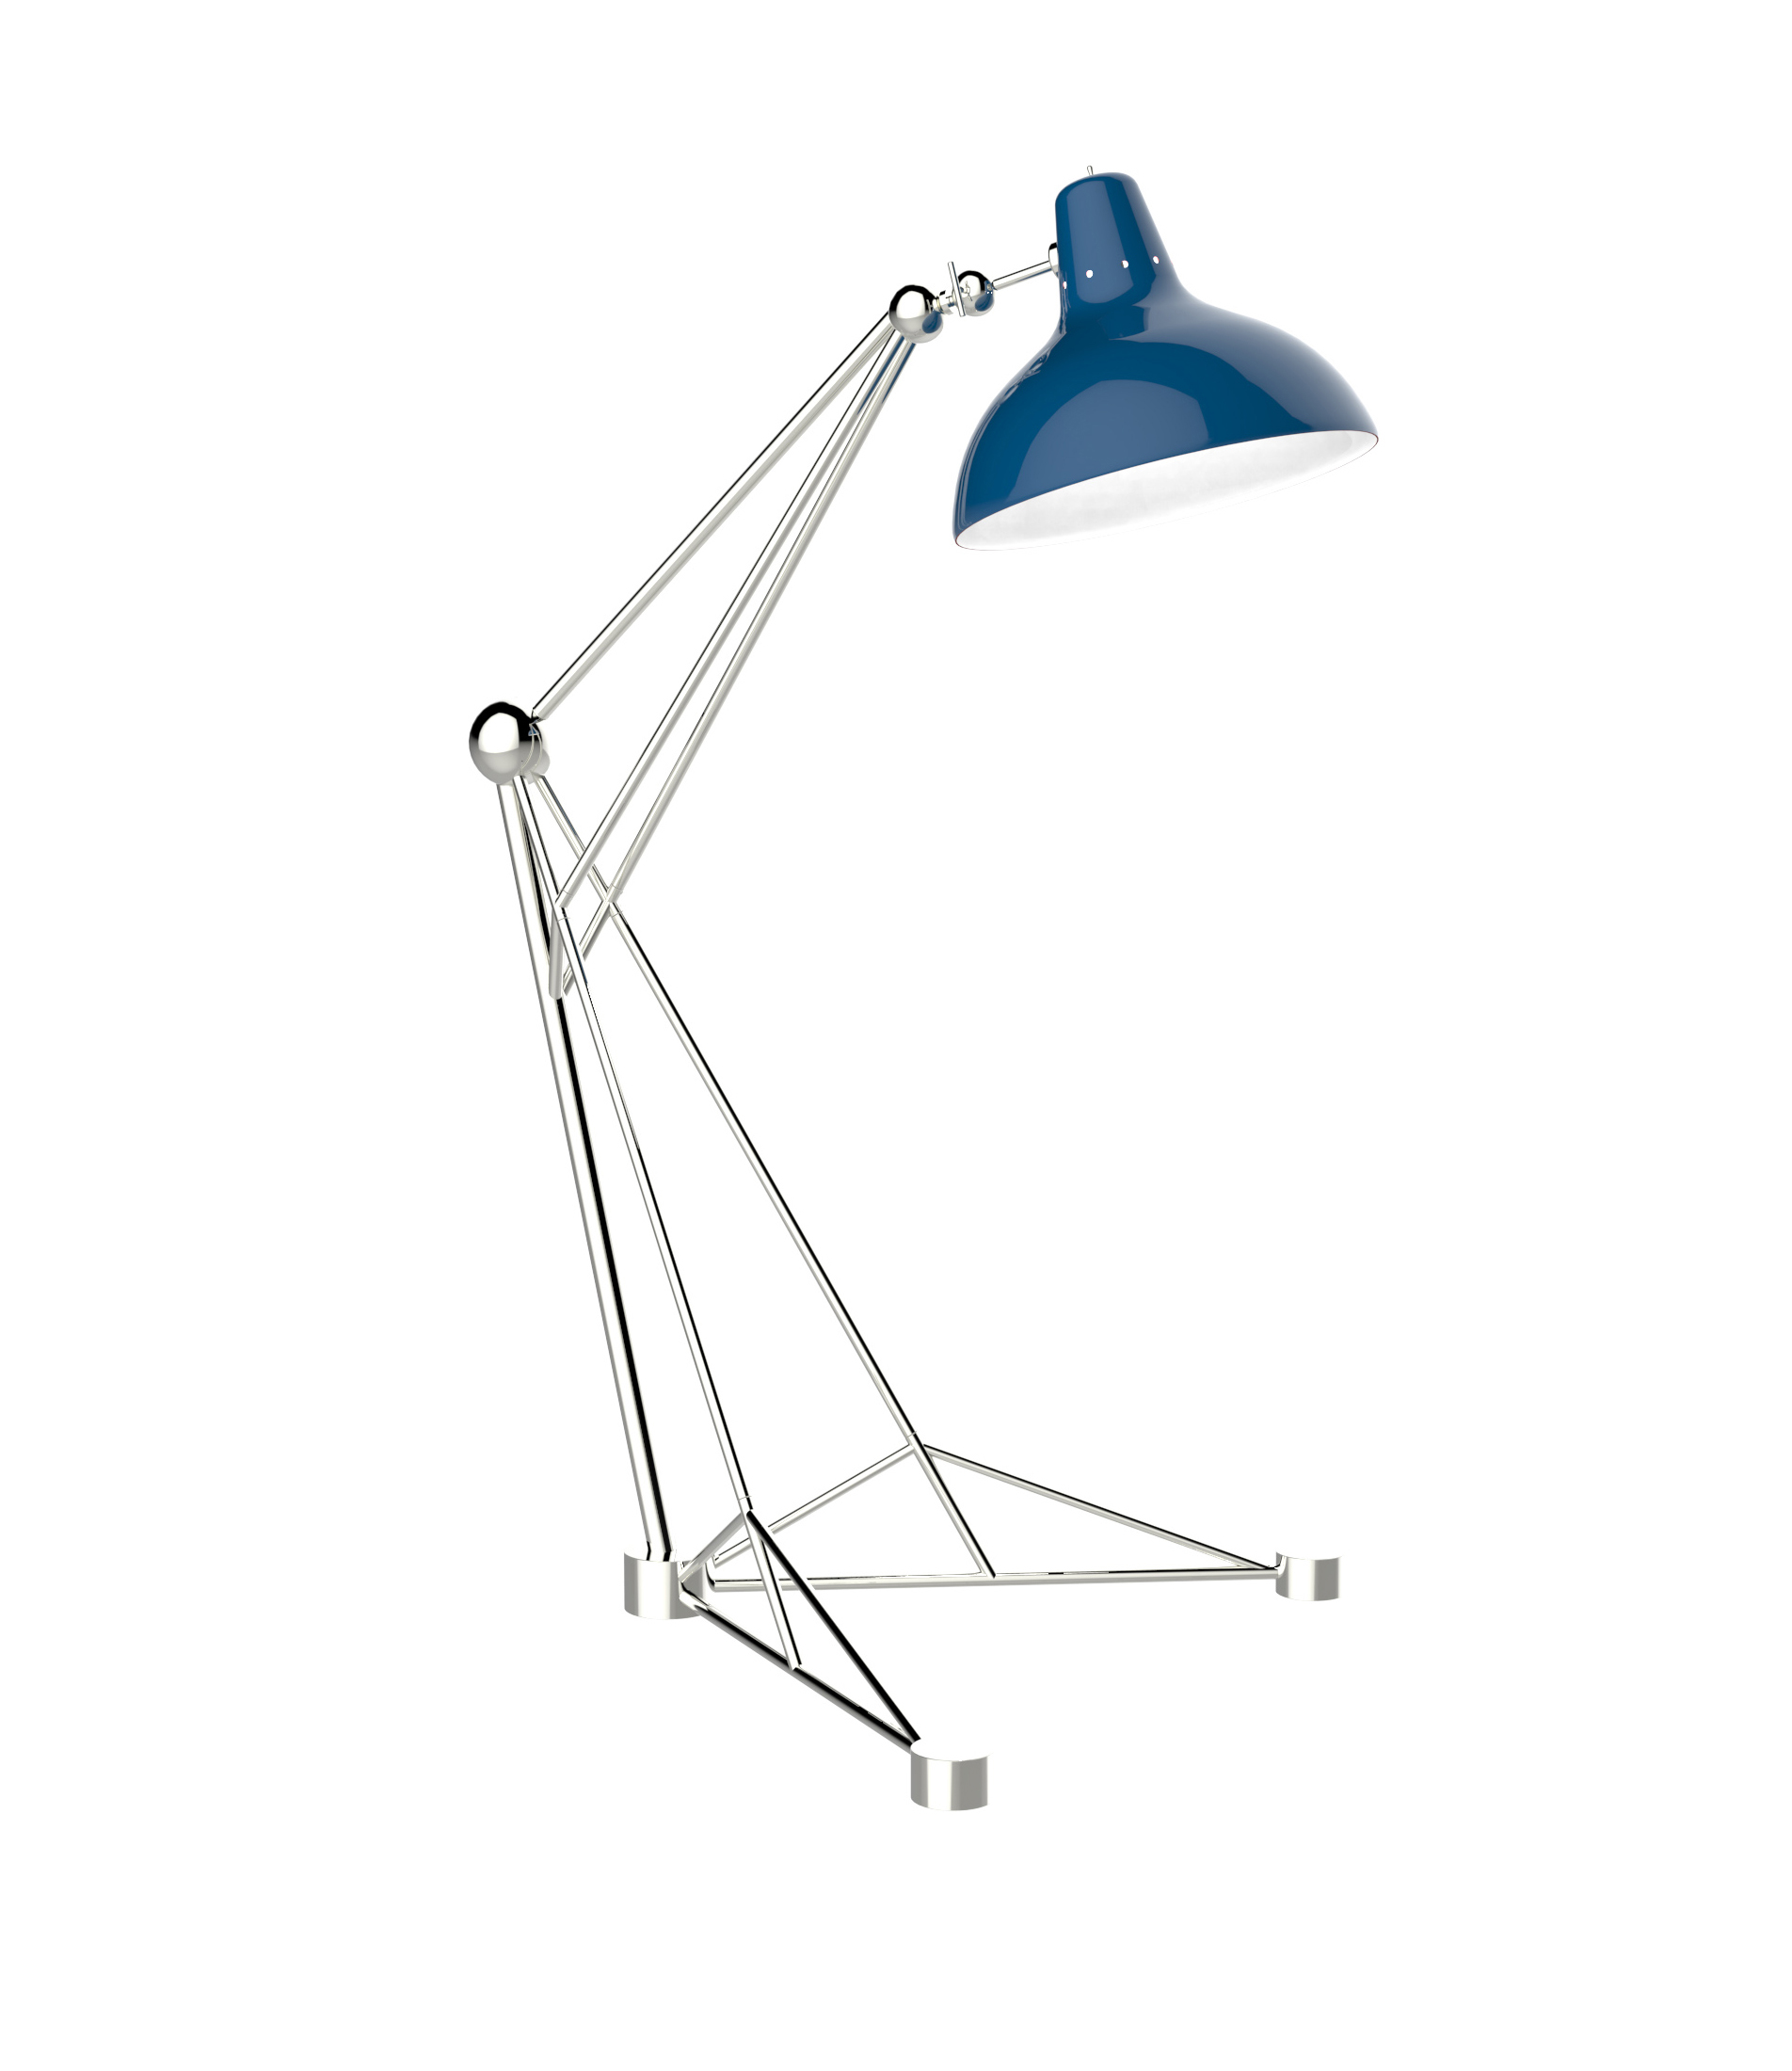 Bright Ideas The Perfect Industrial Floor Lamp for Your Loft 1 industrial floor lamp Bright Ideas: The Perfect Industrial Floor Lamp for Your Loft Bright Ideas The Perfect Industrial Floor Lamp for Your Loft 5